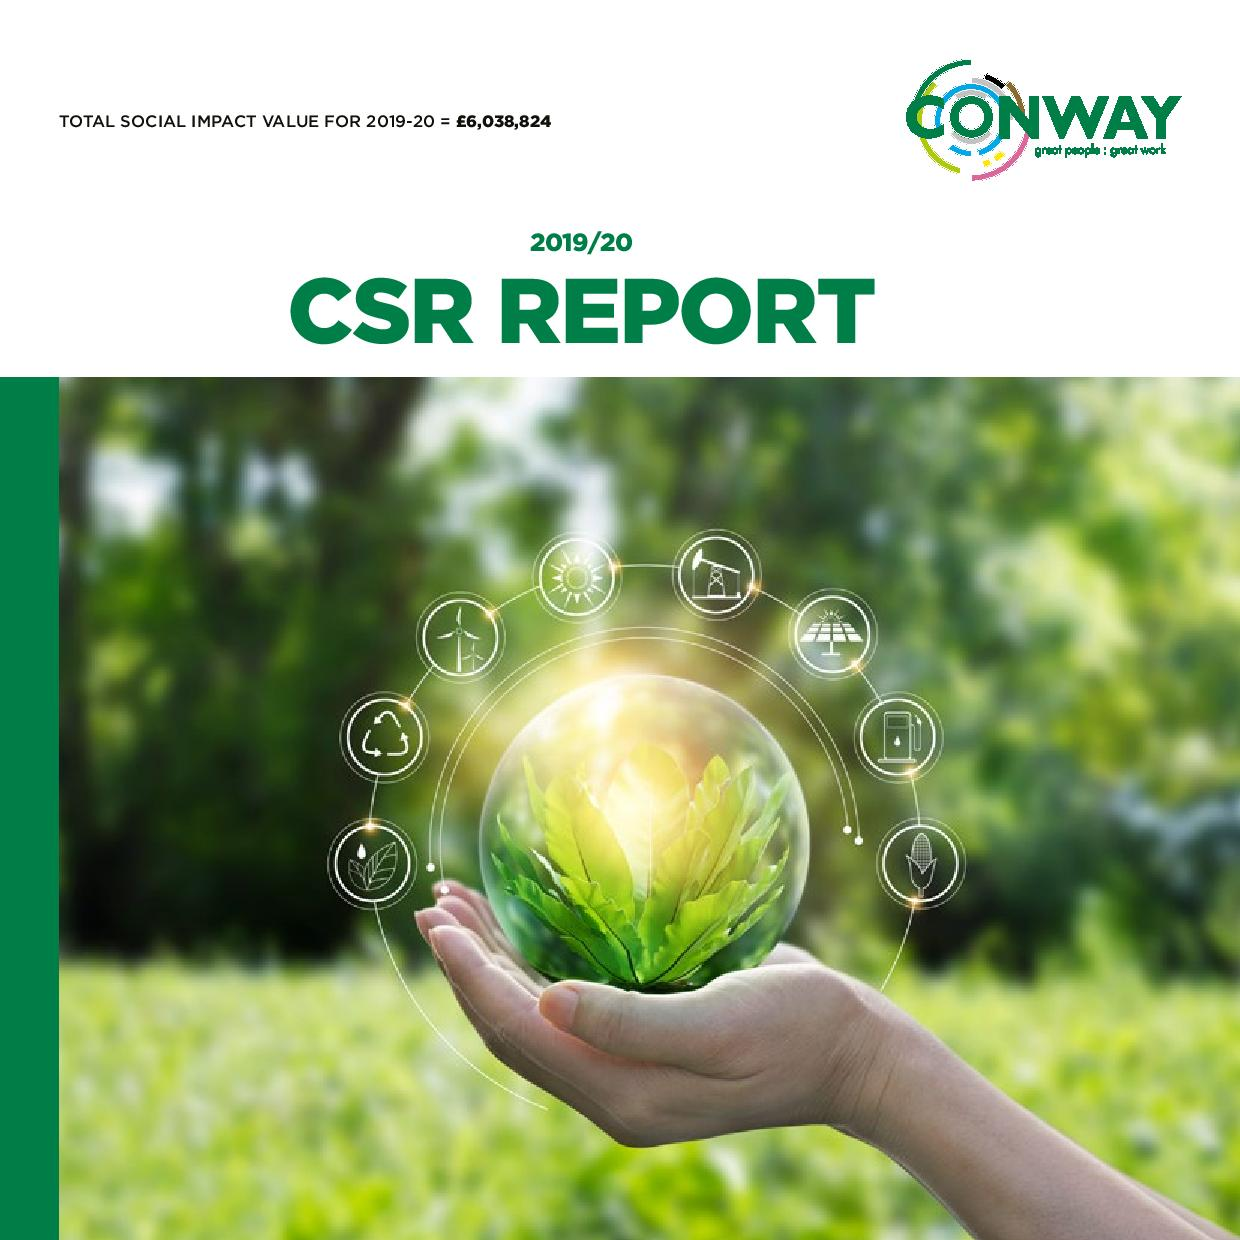 /files/library/images/CSR/CSR Report 2020 JLW4-page-001.jpg